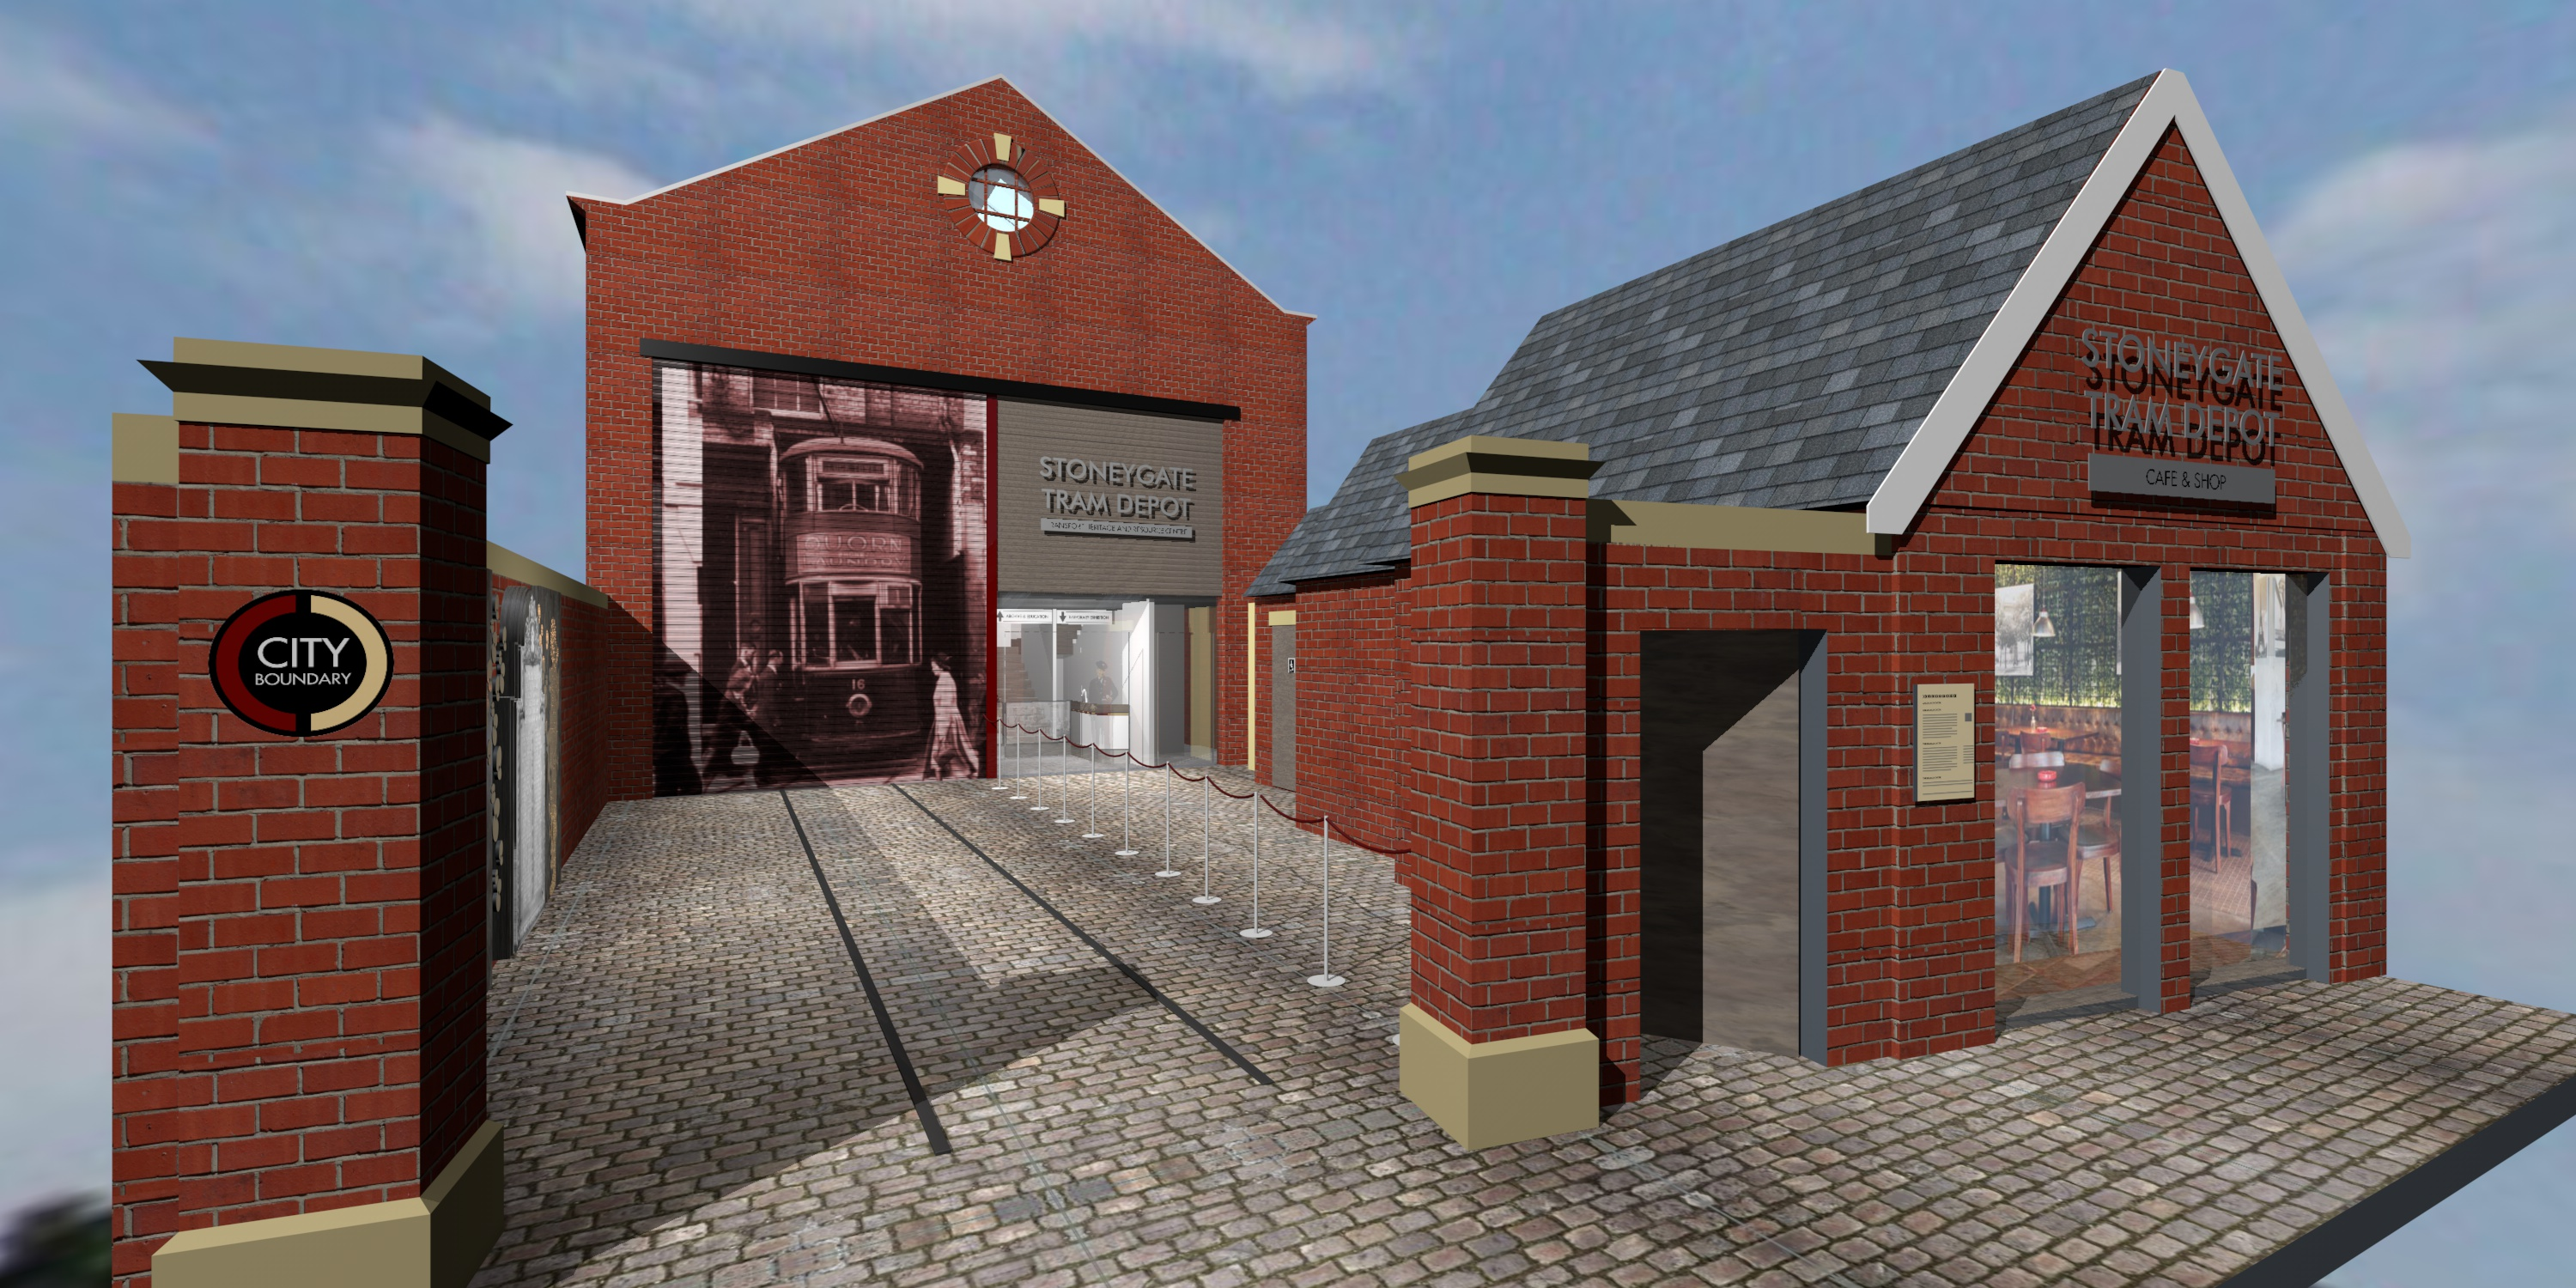 The Old Stoneygate Tram Depot: Leicester Transport Heritage and Resource Centre